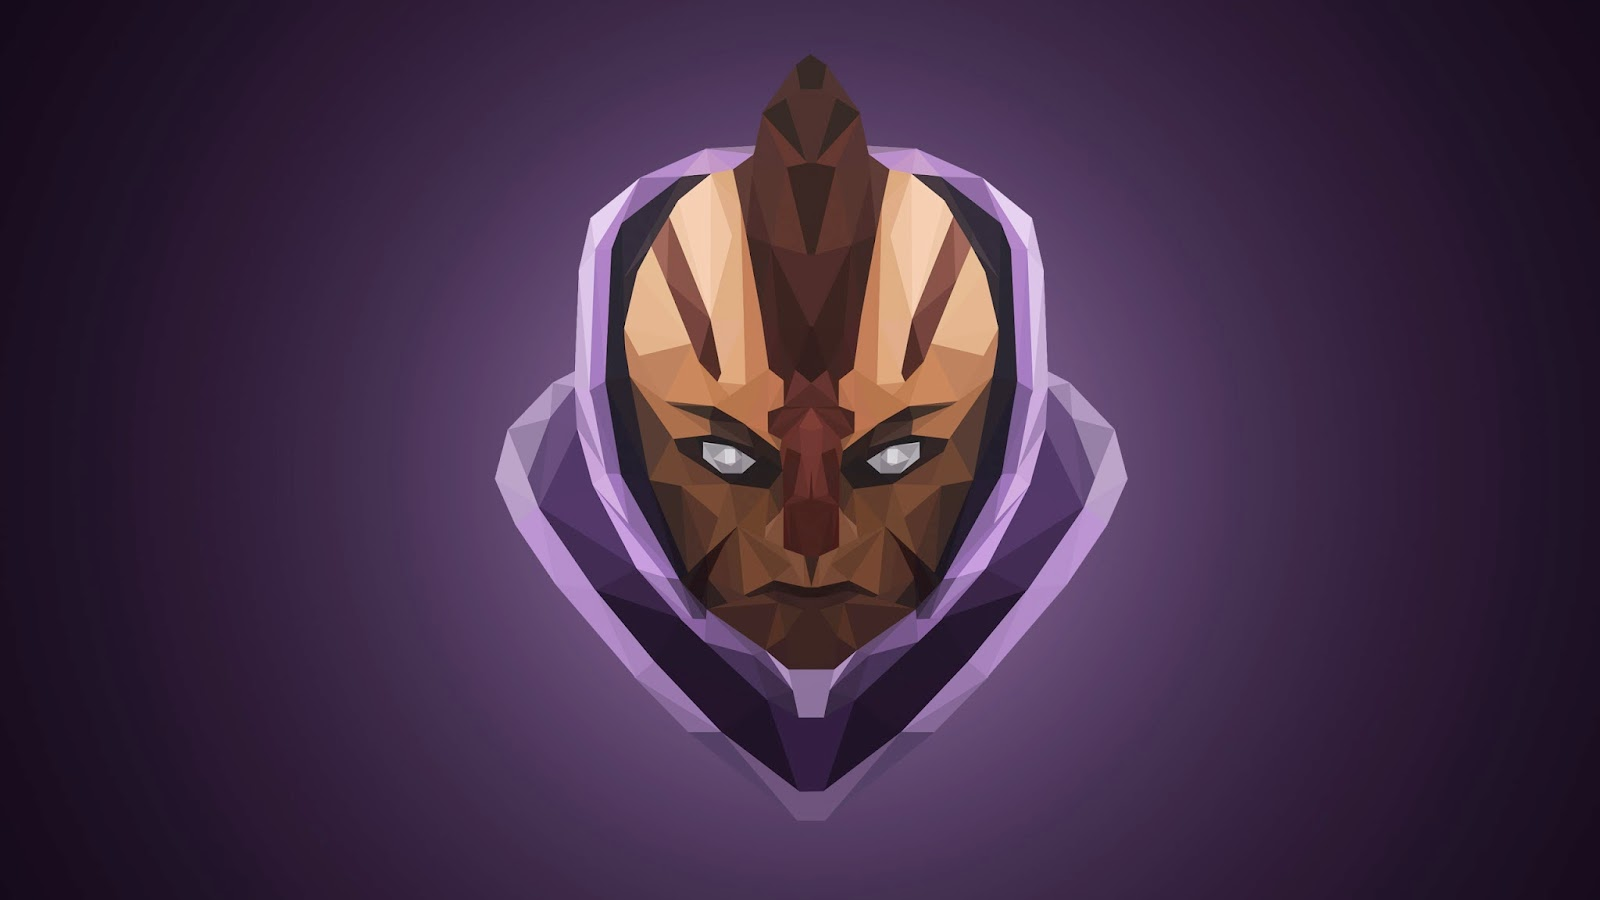 Third Low Poly Art Pubg: The Lowpoly Project: Anti-Mage Dota 2 Low Poly Art